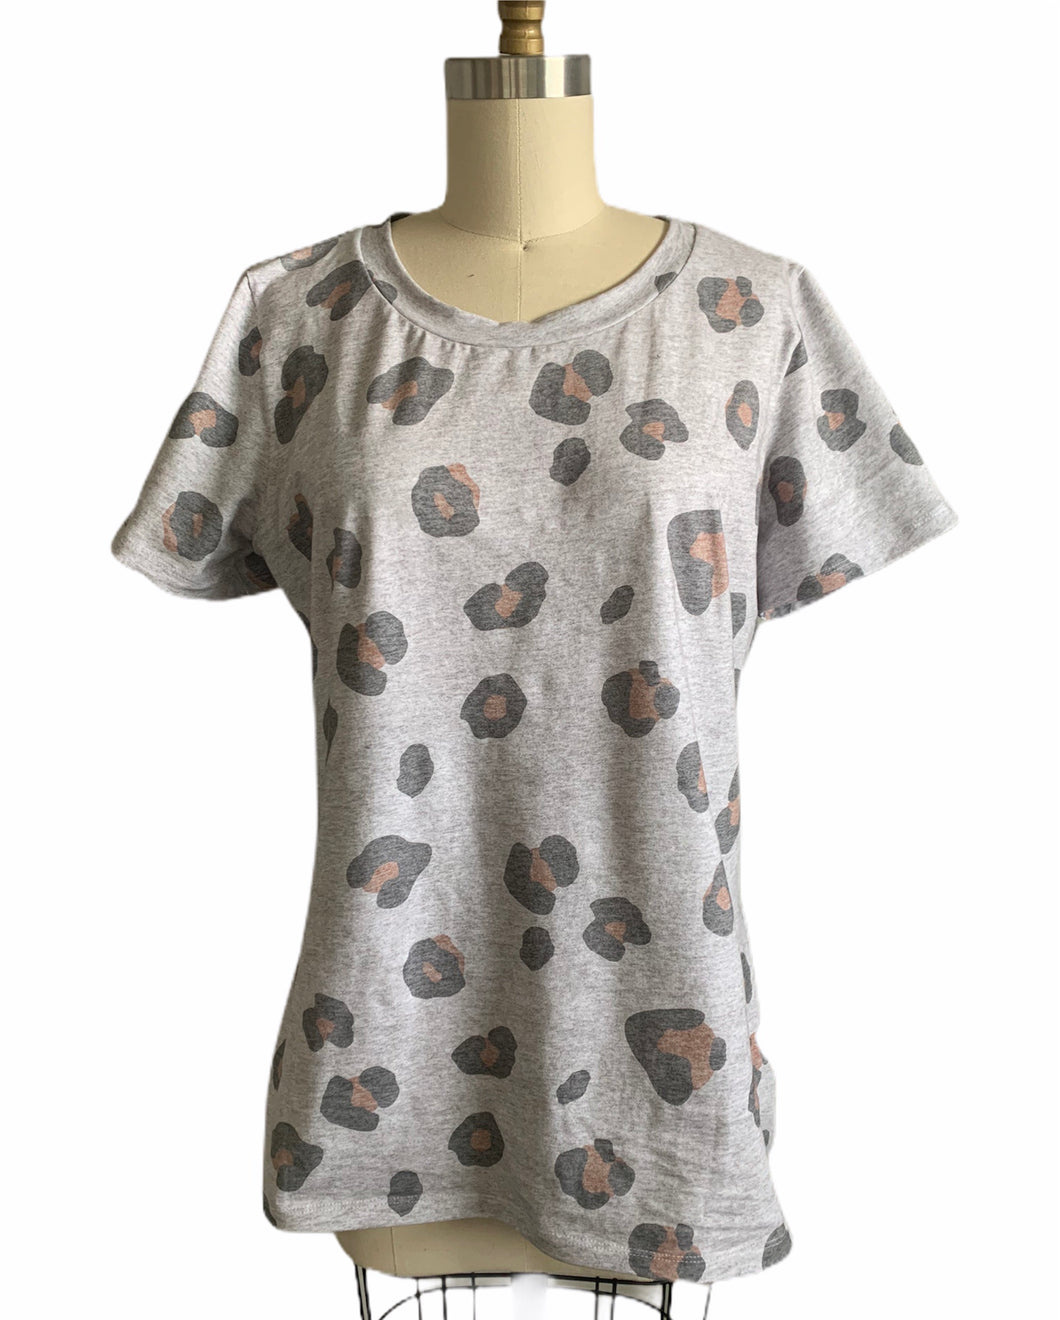 MAMA Basic Tee in Leopard